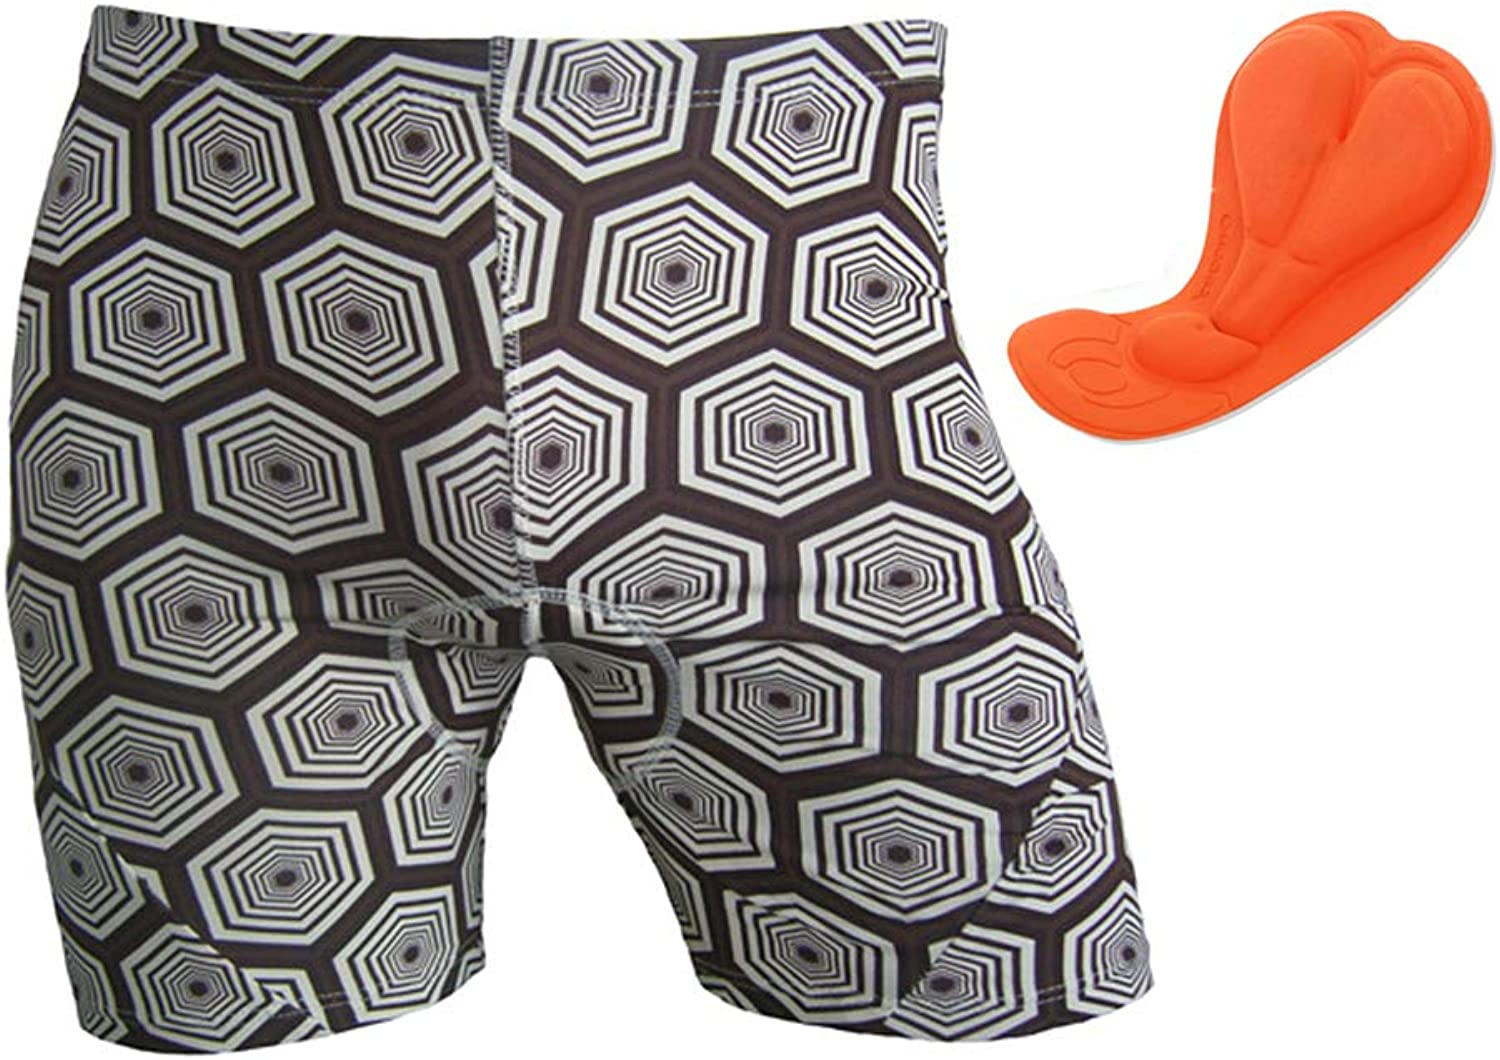 Jaggad Men's Credence Cycling Max 42% OFF Underwear Shorts Bike MTB Padded 3D